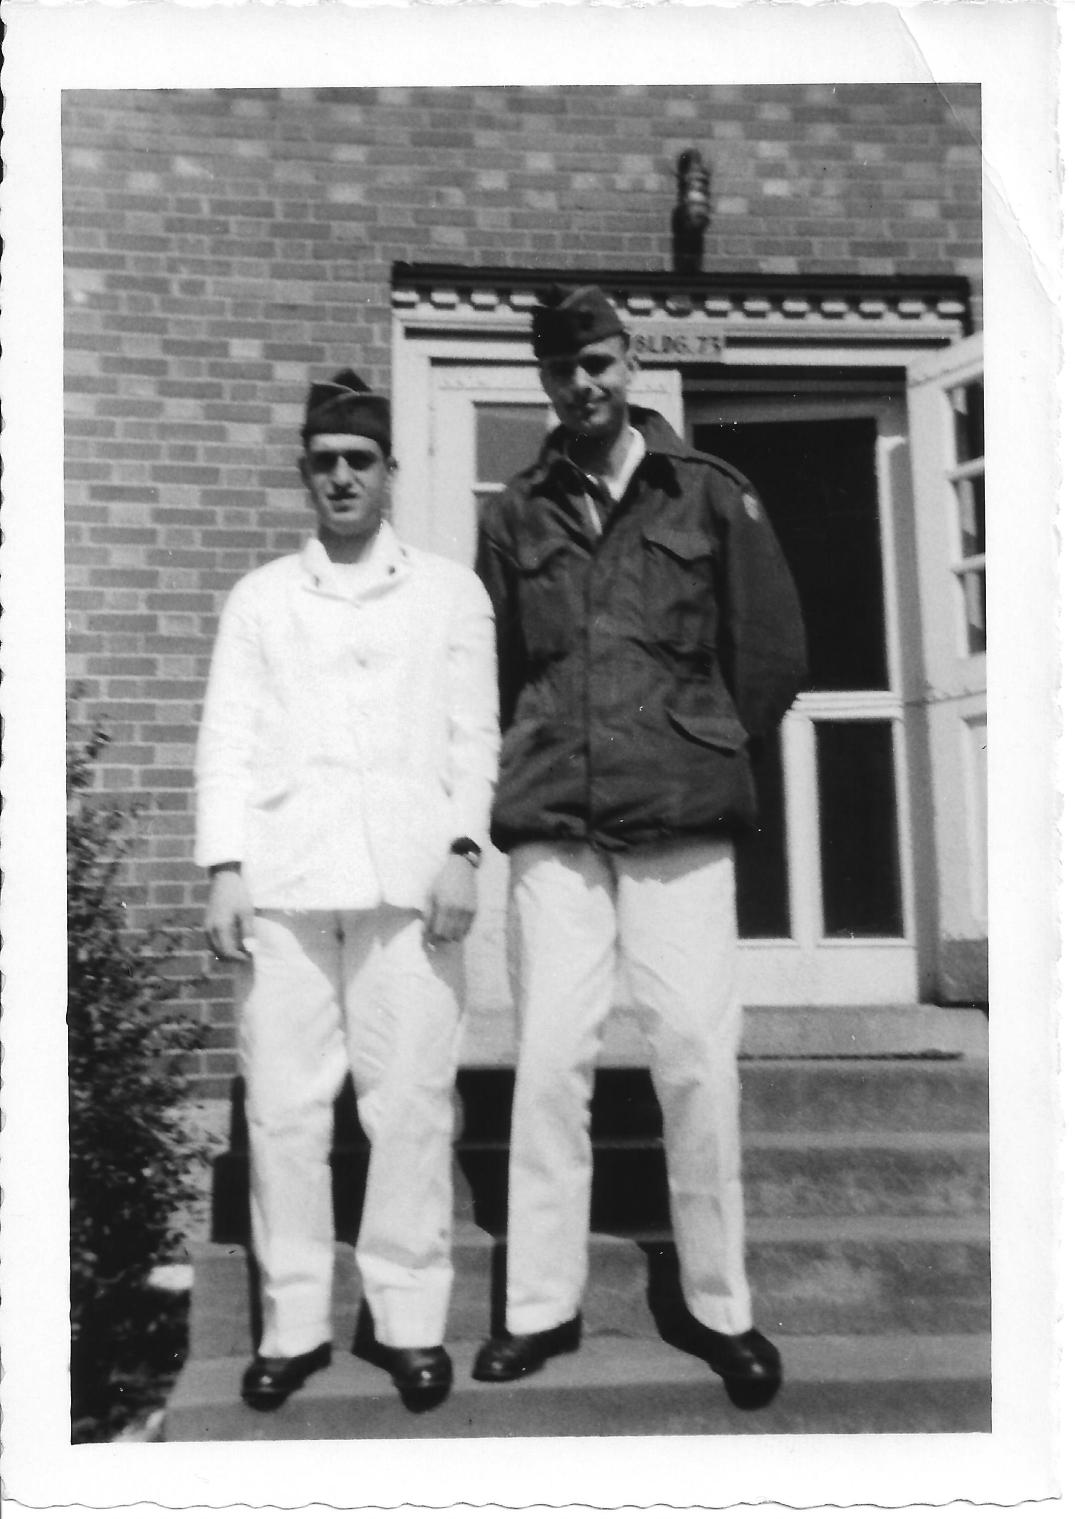 49 MASH Chuck Mazzone and Don Feeney at Walter Reed, May 1953